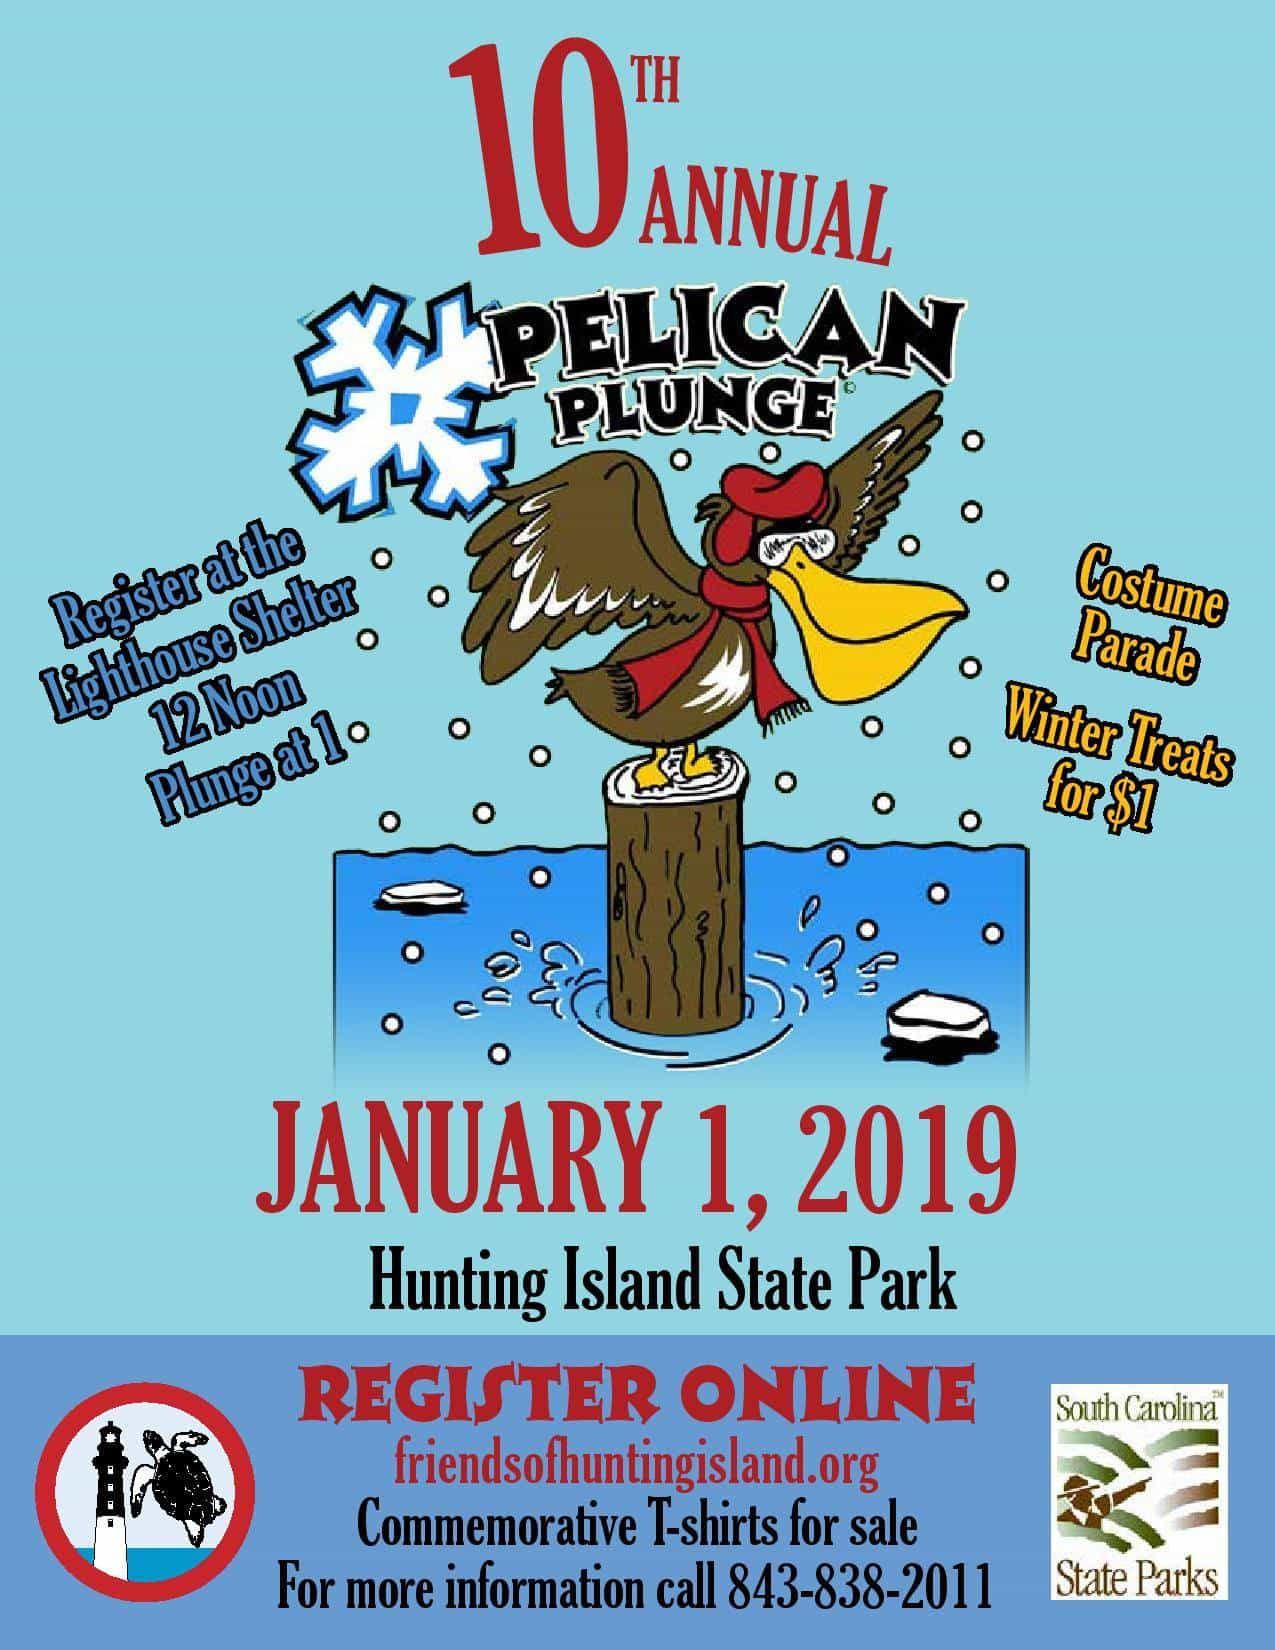 Warm hearts, cold water and lots of fun forecasted for the 2019 Hunting Island New Years Day Pelican Plunge!